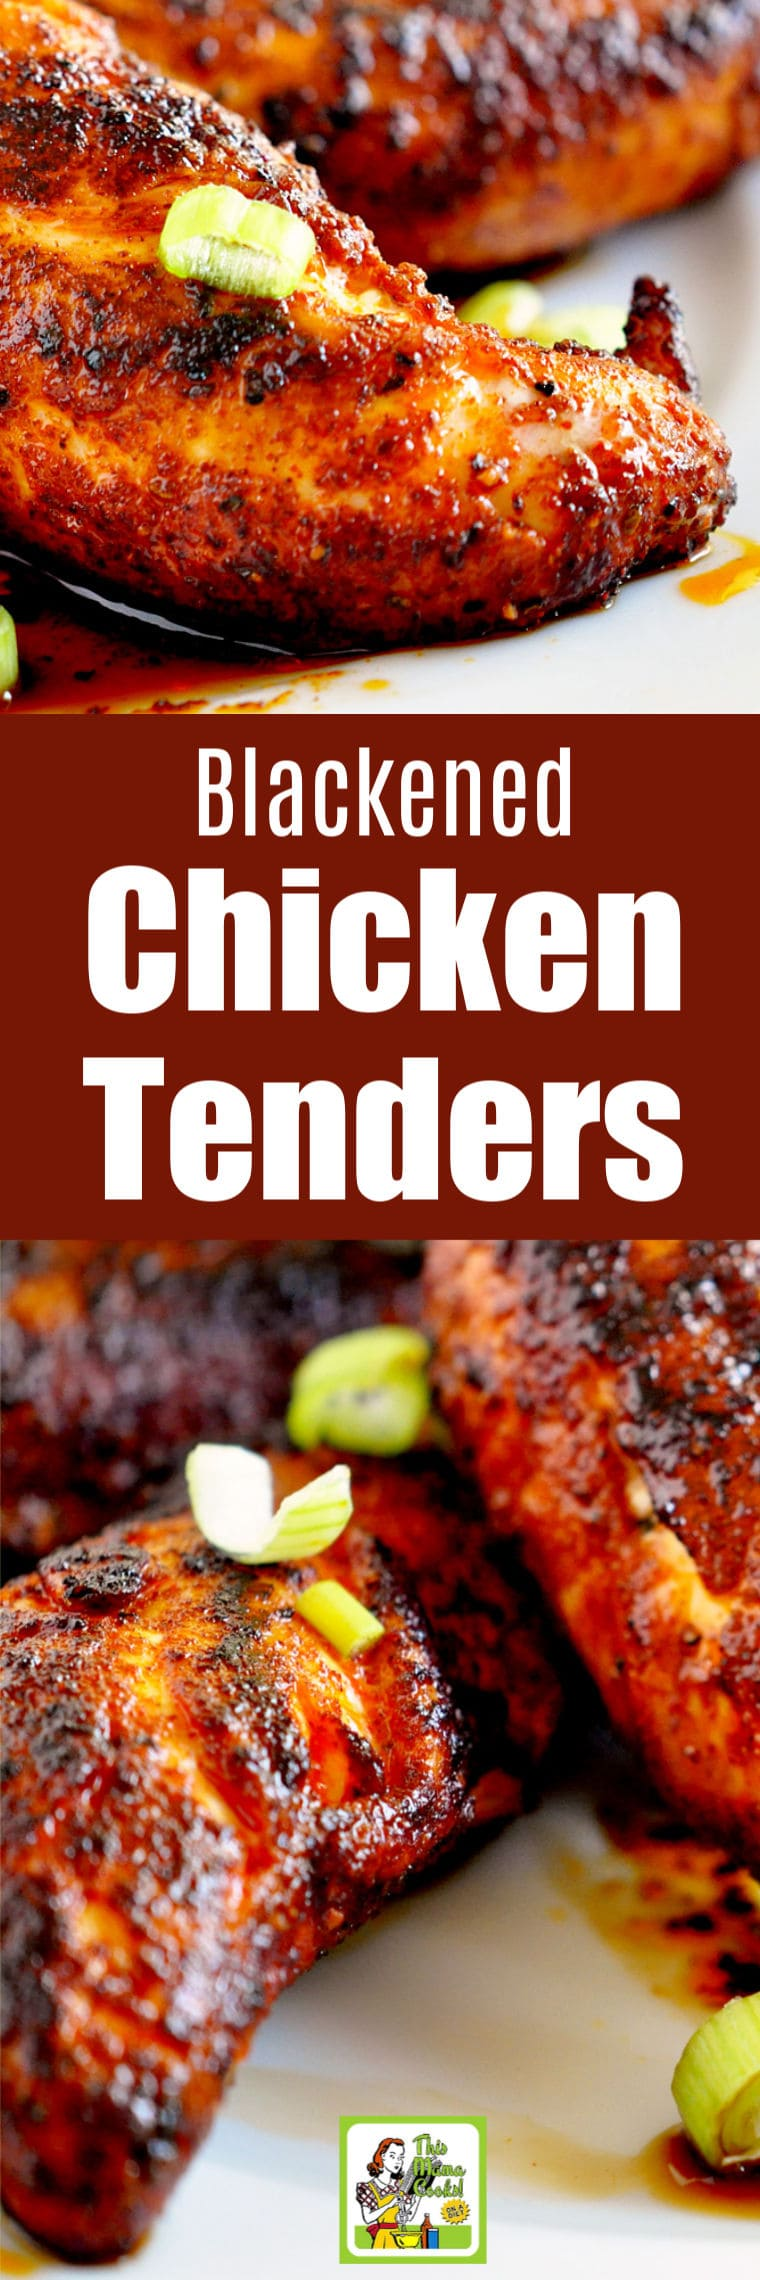 Blackened Chicken Tenders